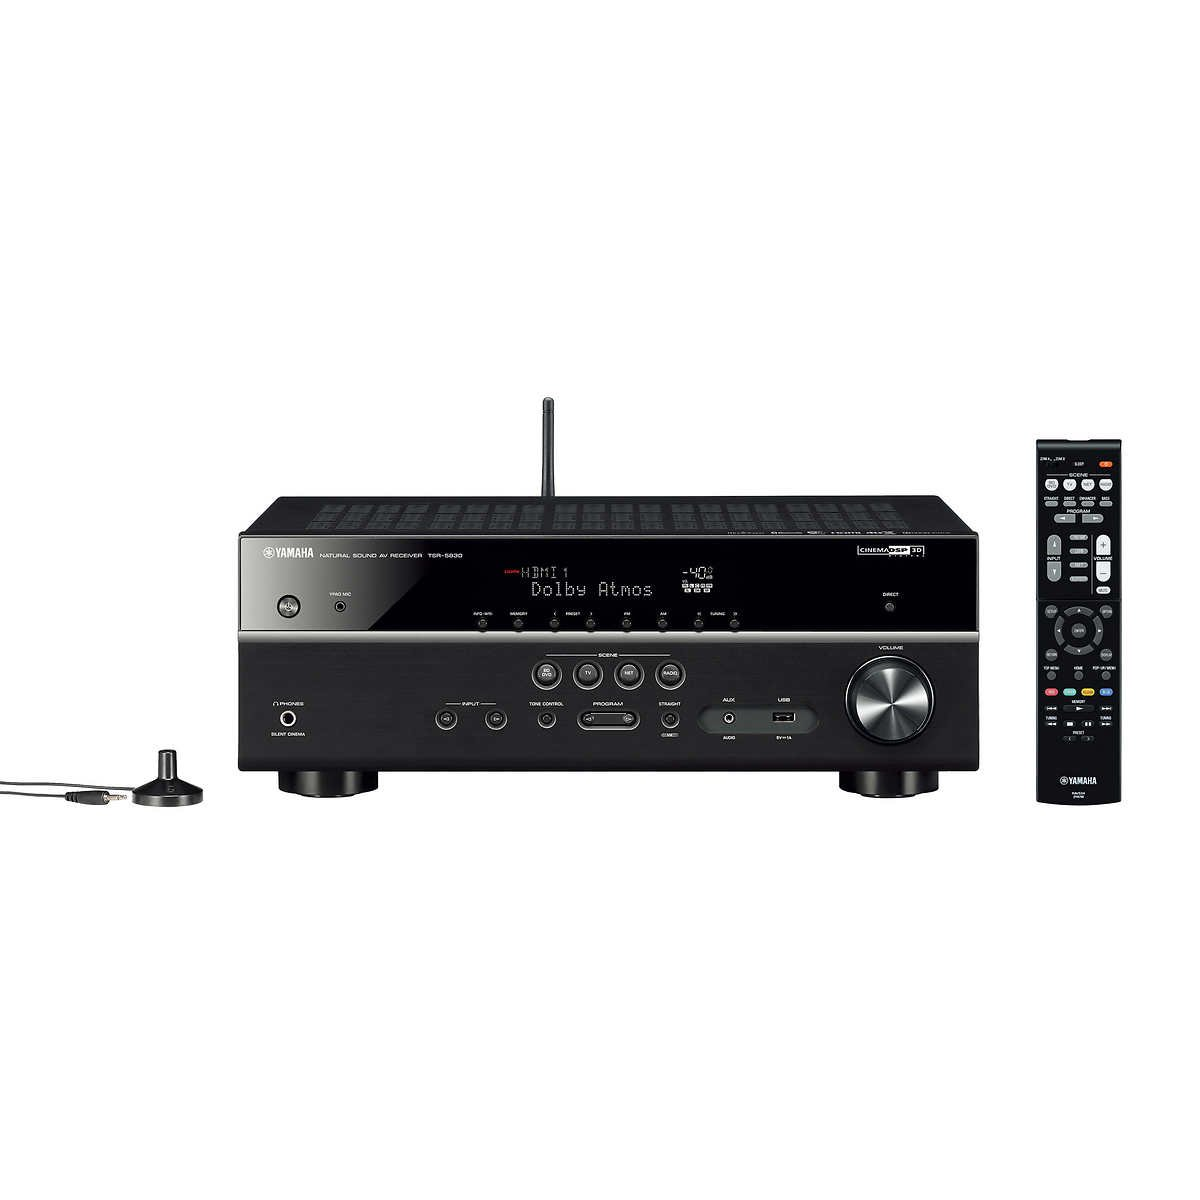 Yamaha TSR-5830 7.2 Channel Network AV Receiver by Yamaha